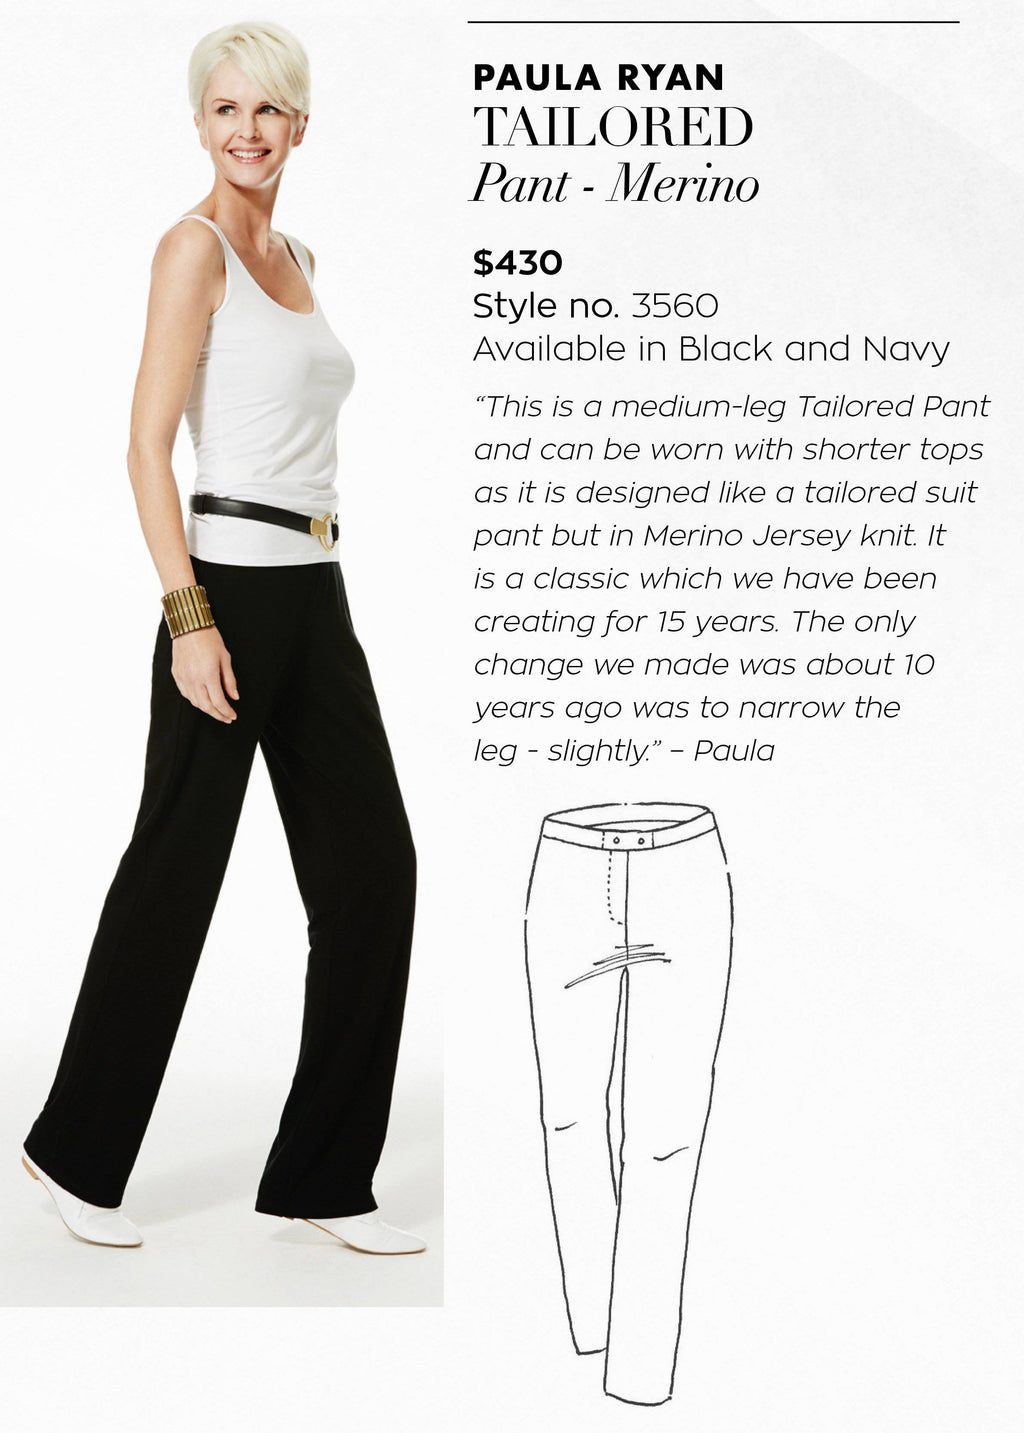 PAULA RYAN ESSENTIALS Tailored Pant - Merino - Pant - Paula Ryan Essentials - Paula Ryan